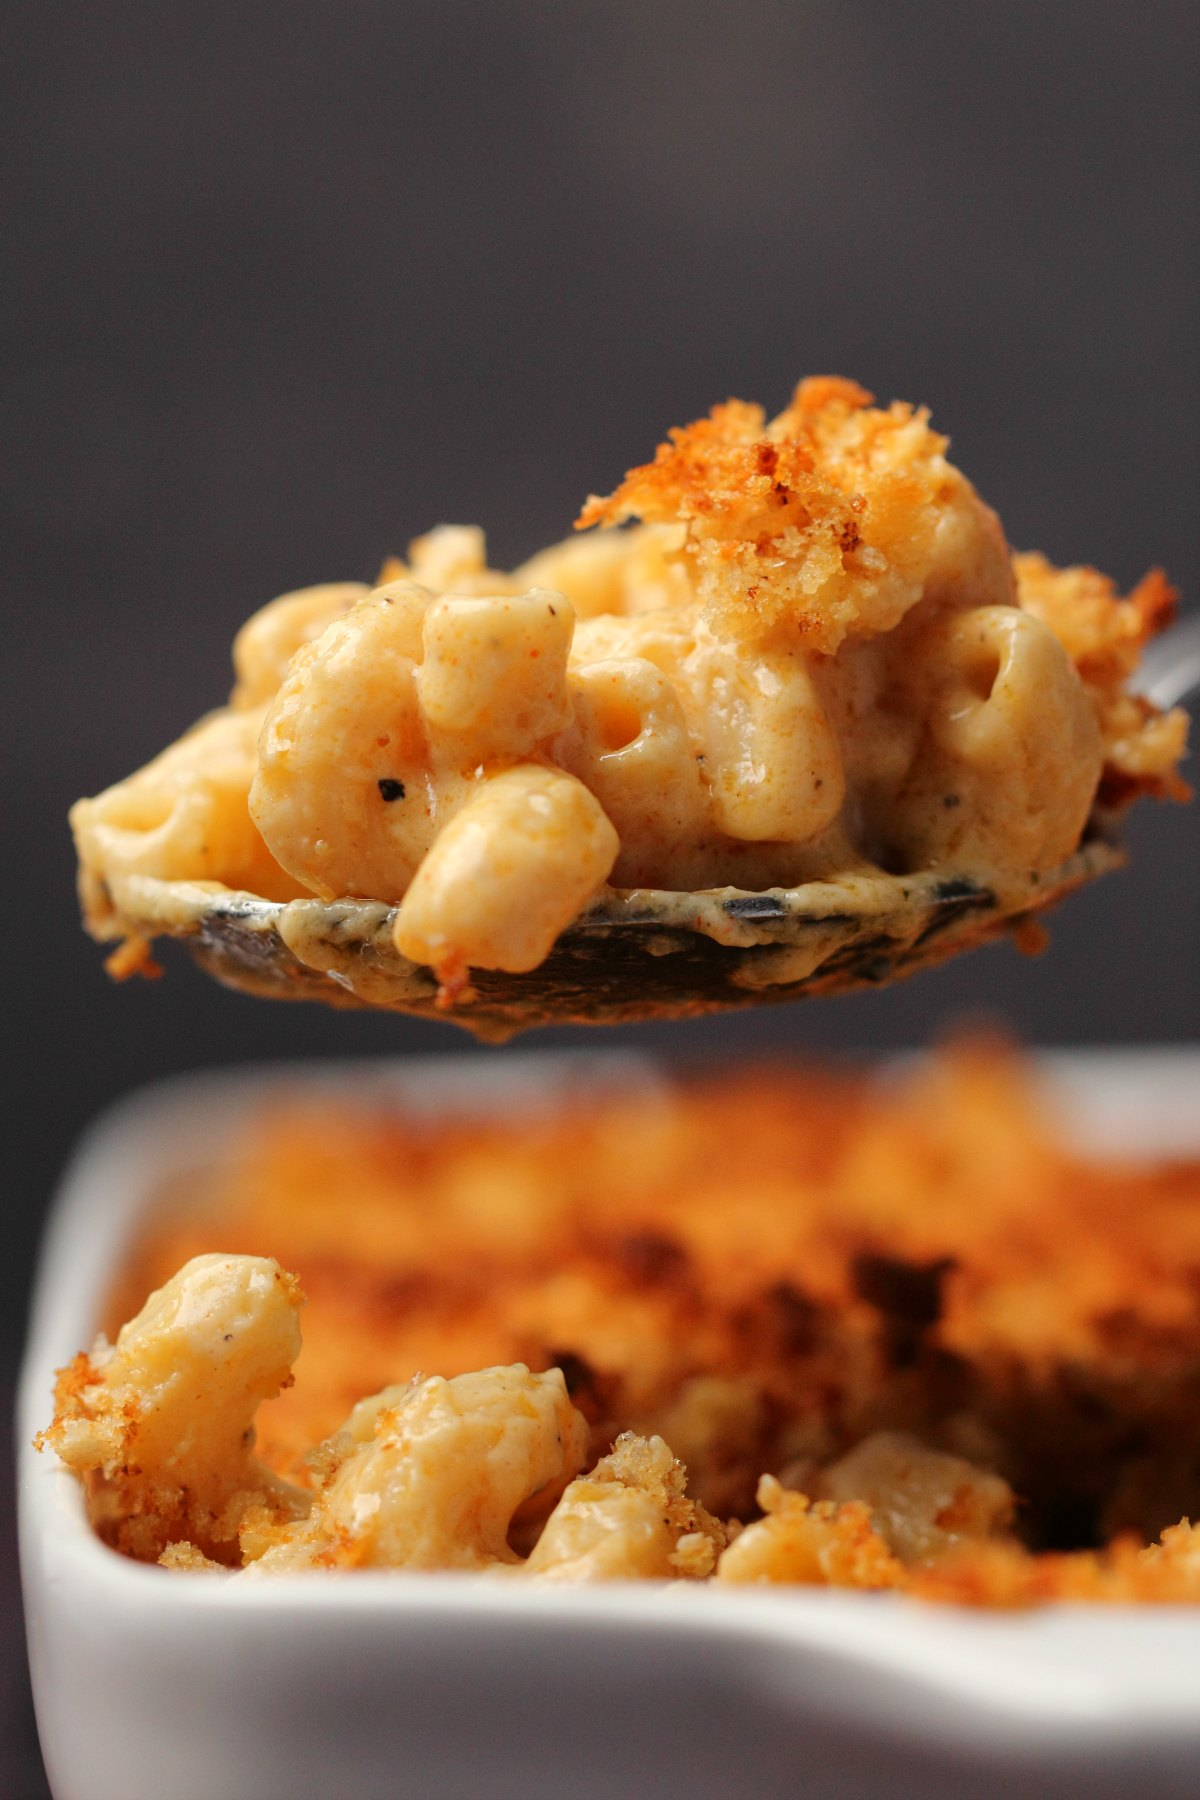 Classic Baked Vegan Mac and Cheese